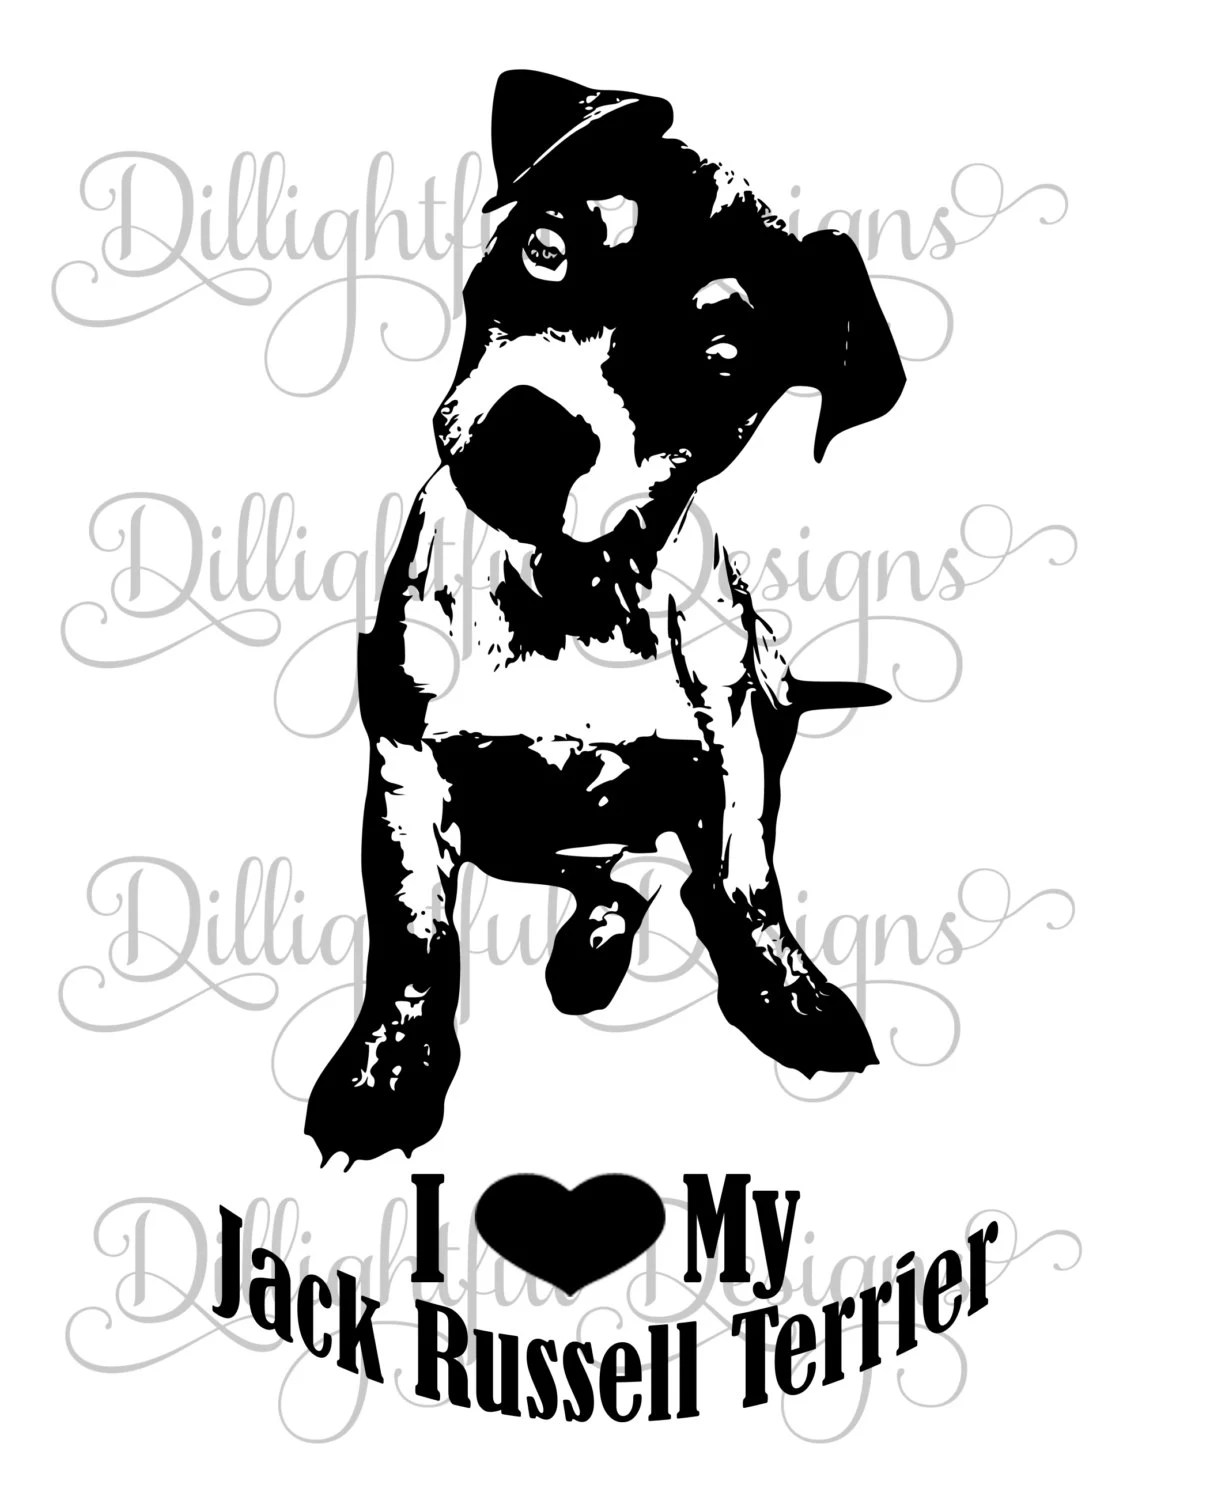 Jack Russell Terrier Svg Decal Download Sticker Sil